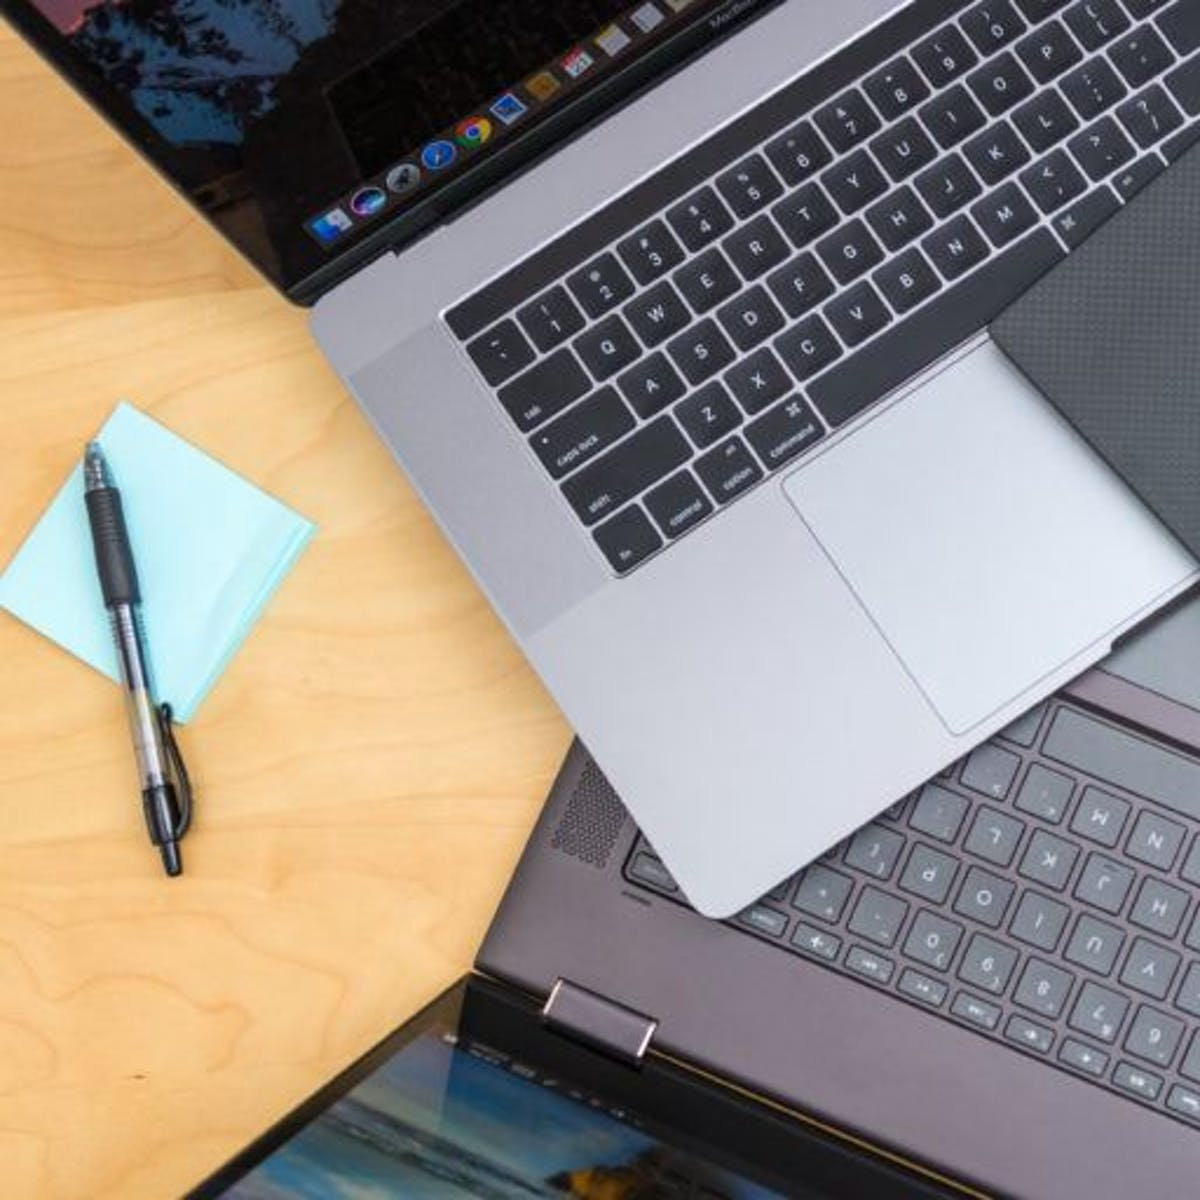 Find Your Next Laptop: Best Computers for Your Money